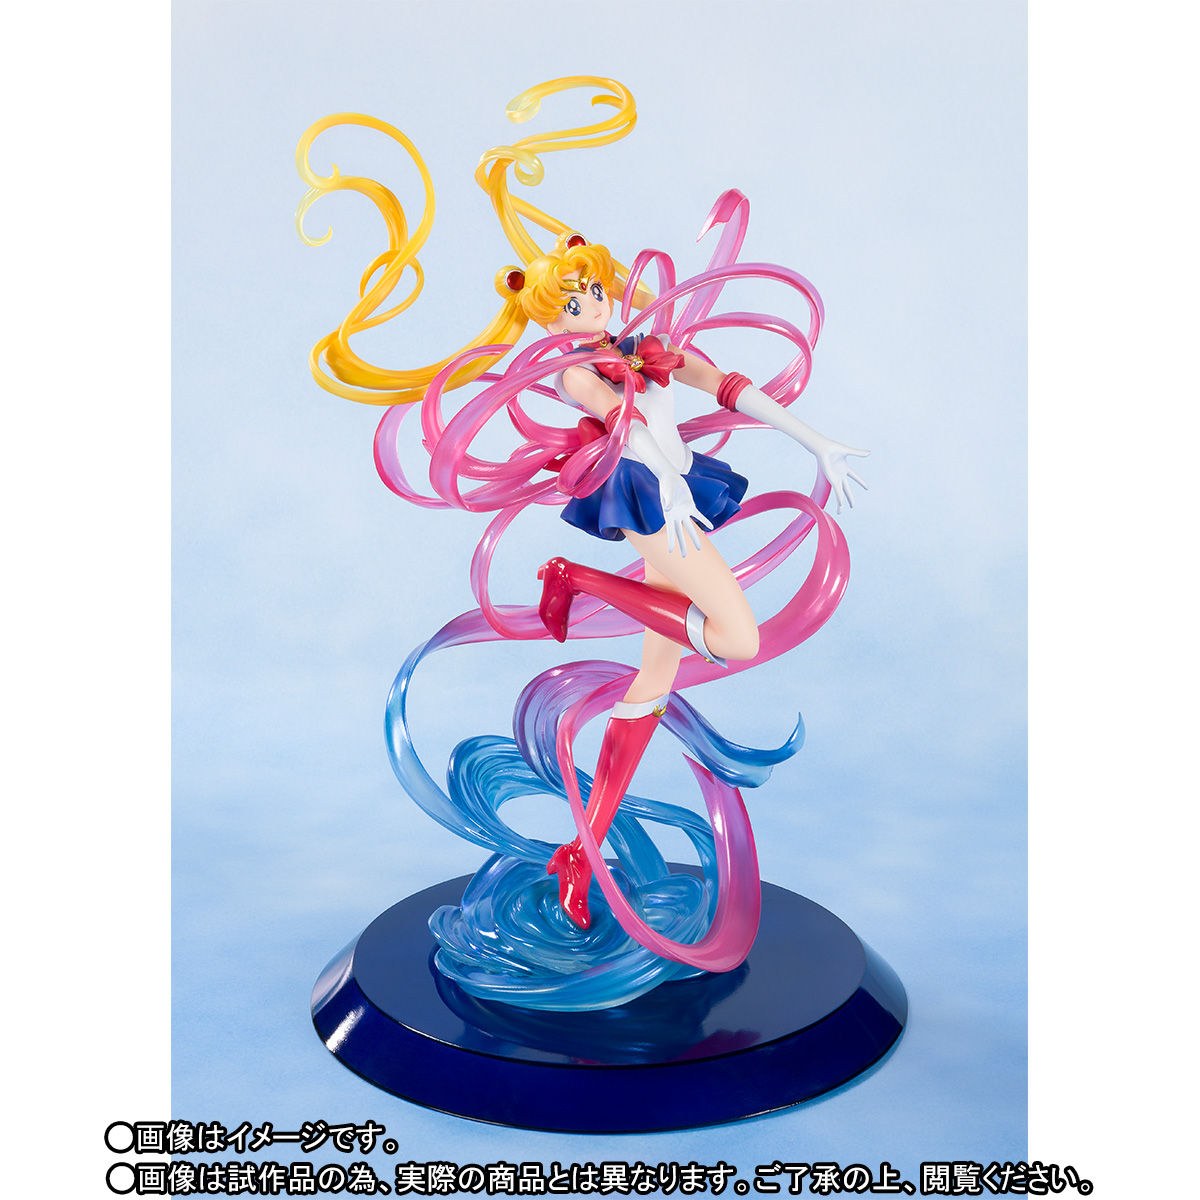 Figuarts Zero chouette『セーラームーン -Moon Crystal Power, Make Up-』完成品フィギュア-003